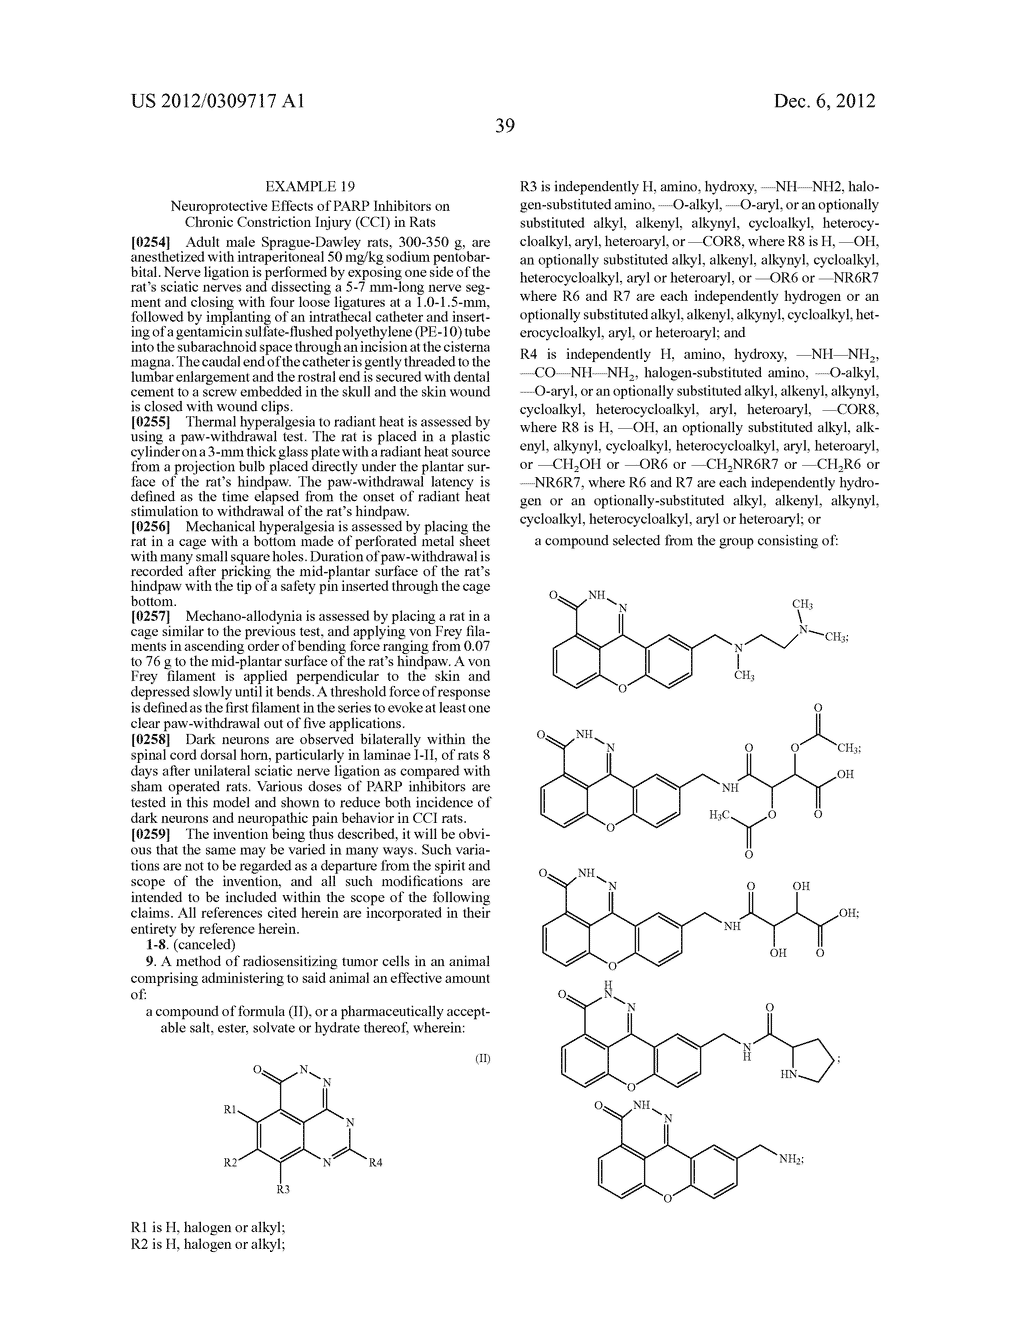 COMPOUNDS, METHODS AND PHARMACEUTICAL COMPOSITIONS FOR INHIBITING PARP - diagram, schematic, and image 41